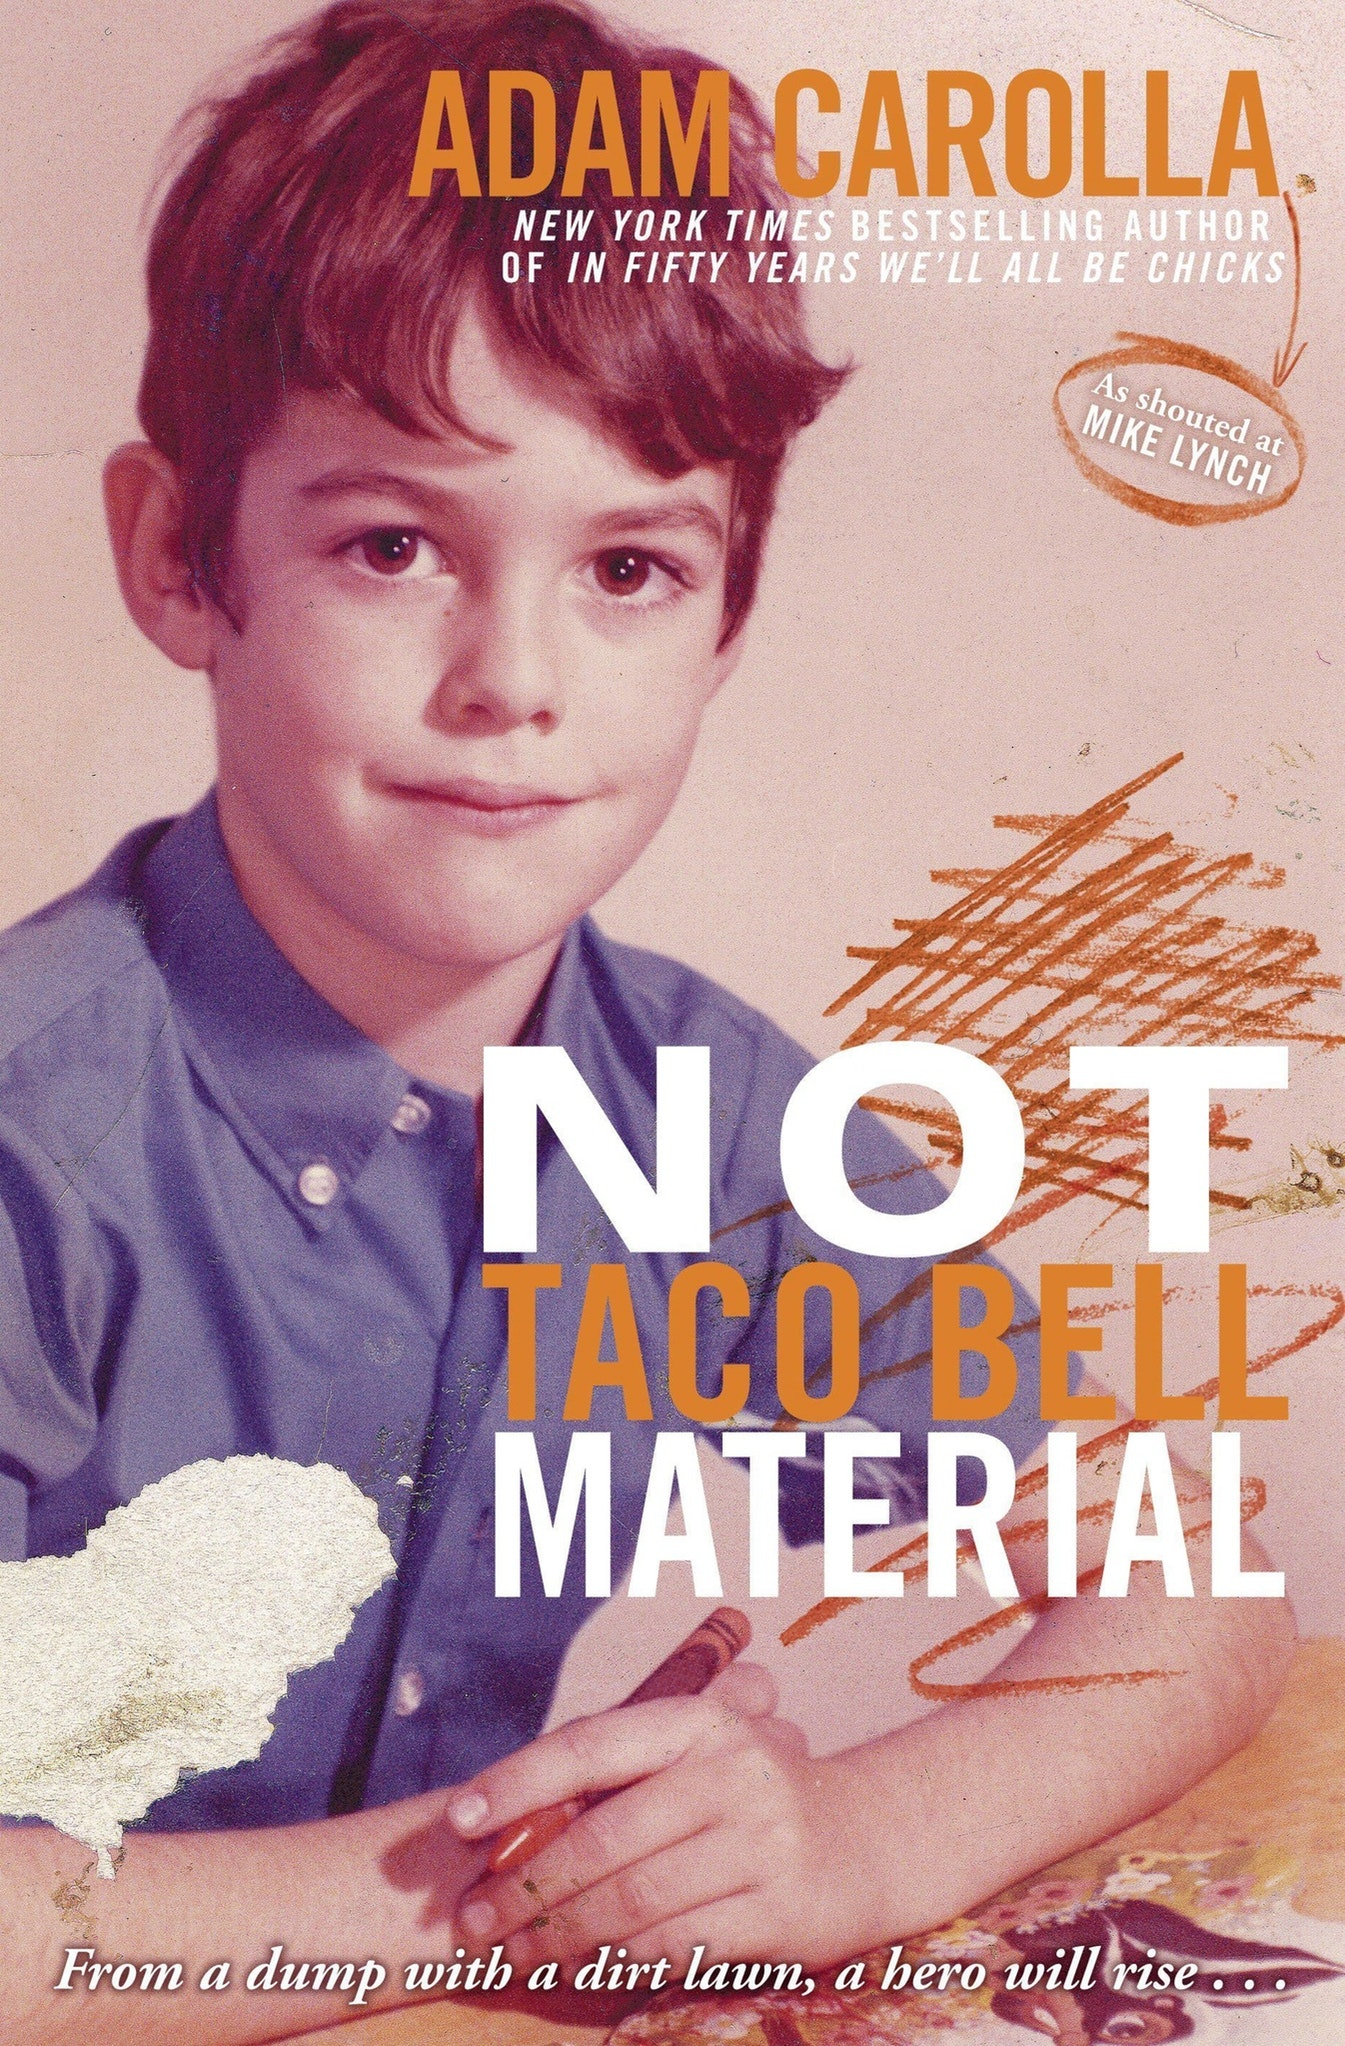 1. 'Not Taco Bell Material' by Adam Carolla